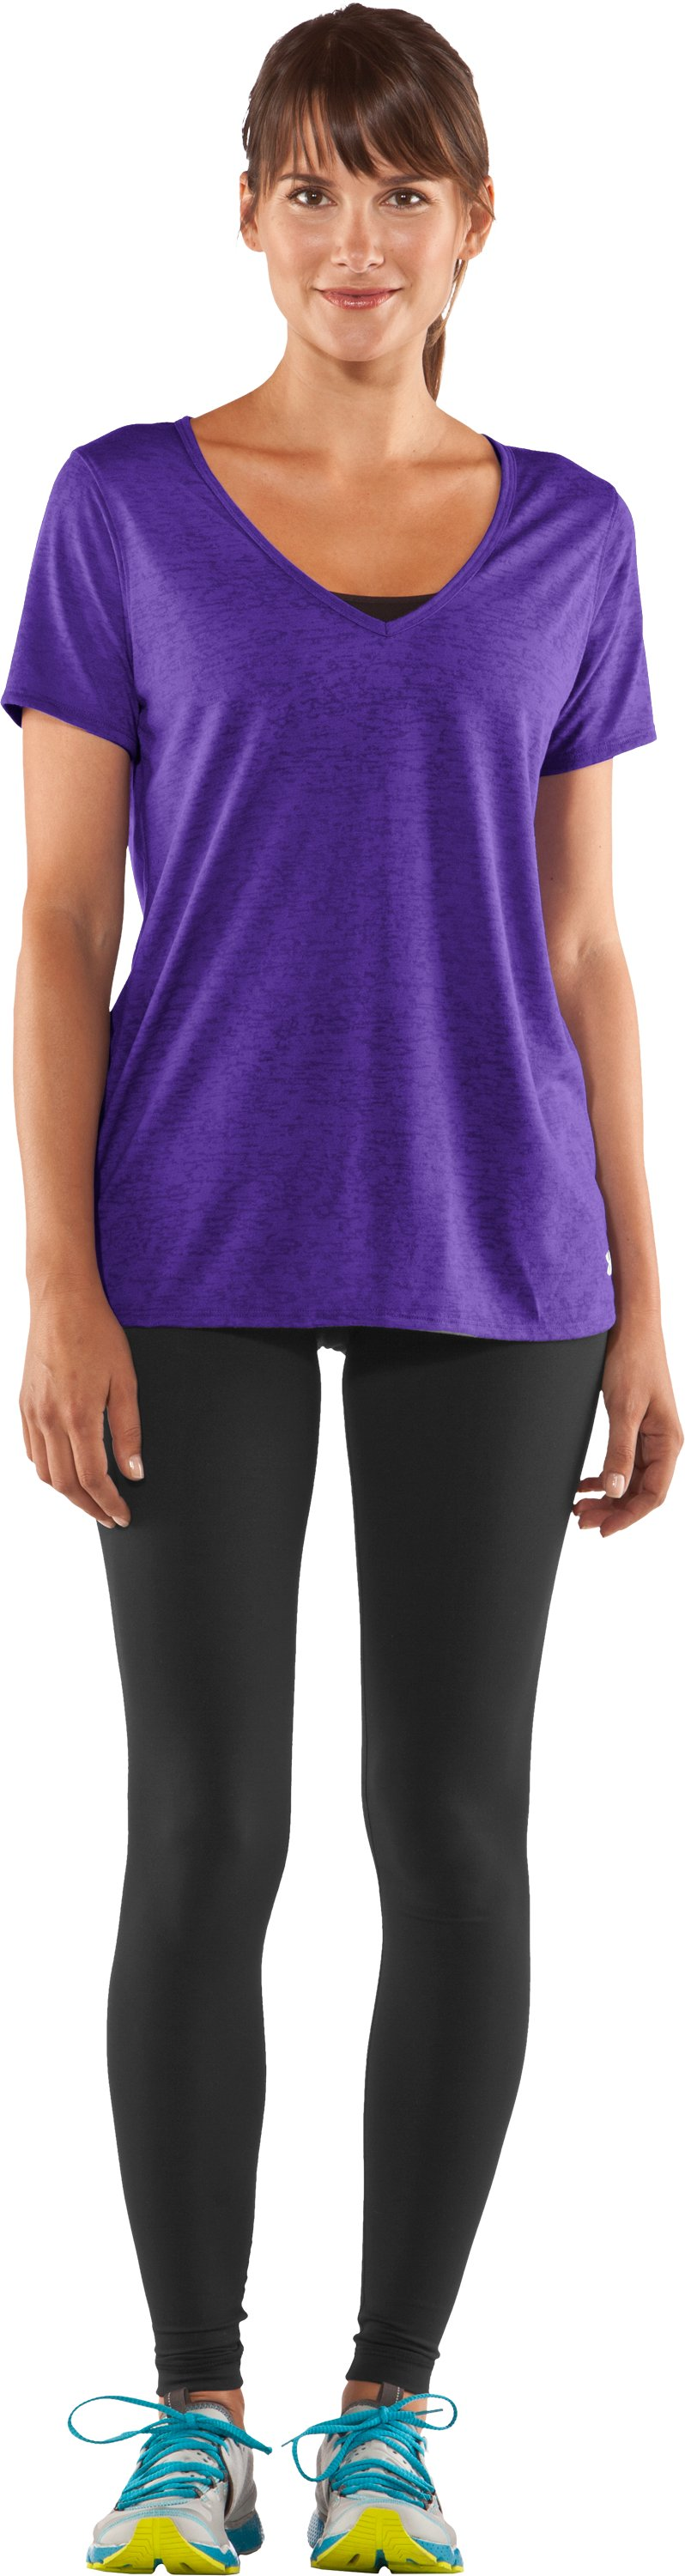 Women's Achieve Burnout T-Shirt, Pluto